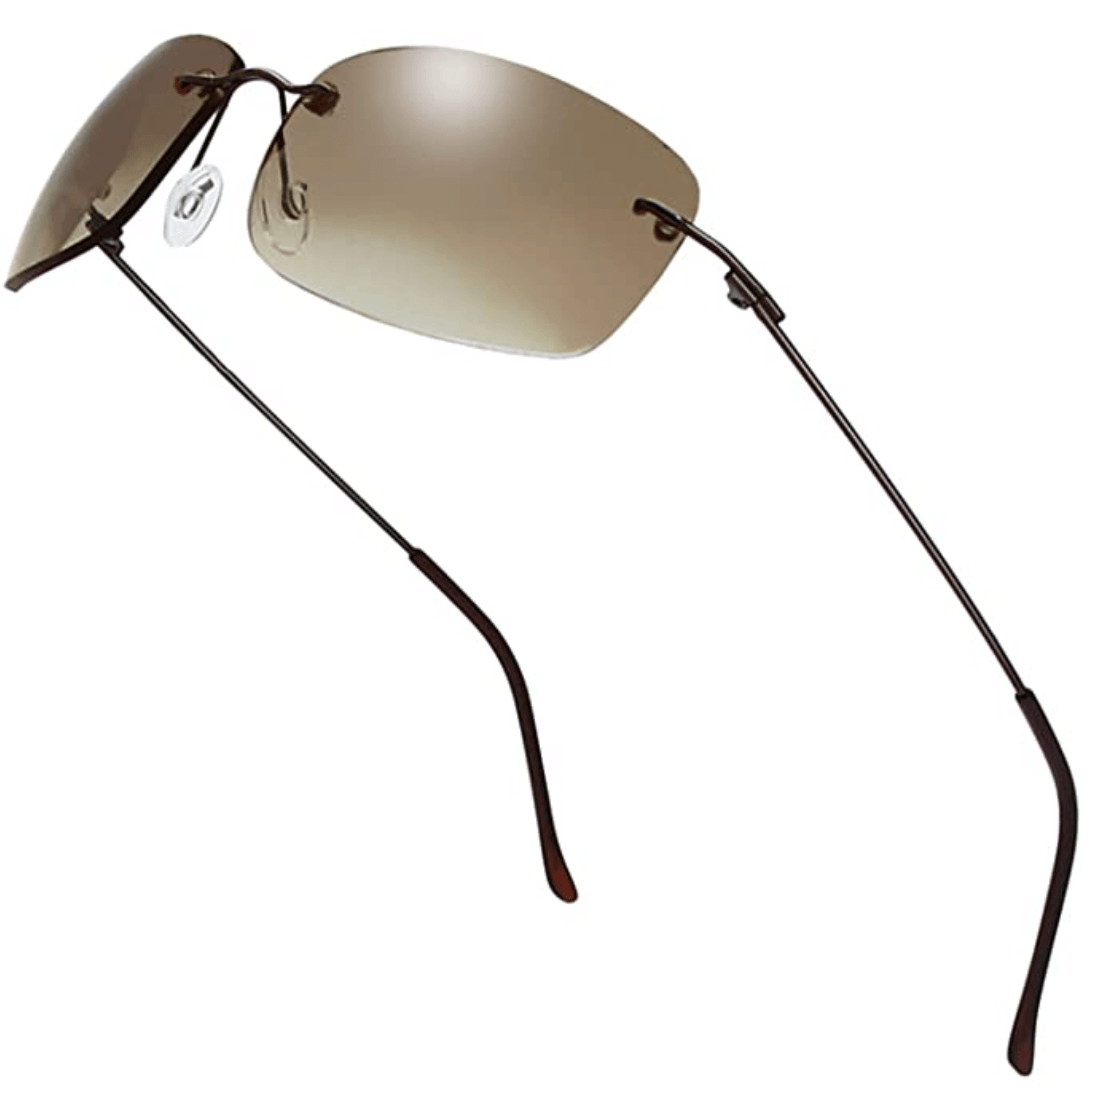 brown y2k sunglasses on a white background